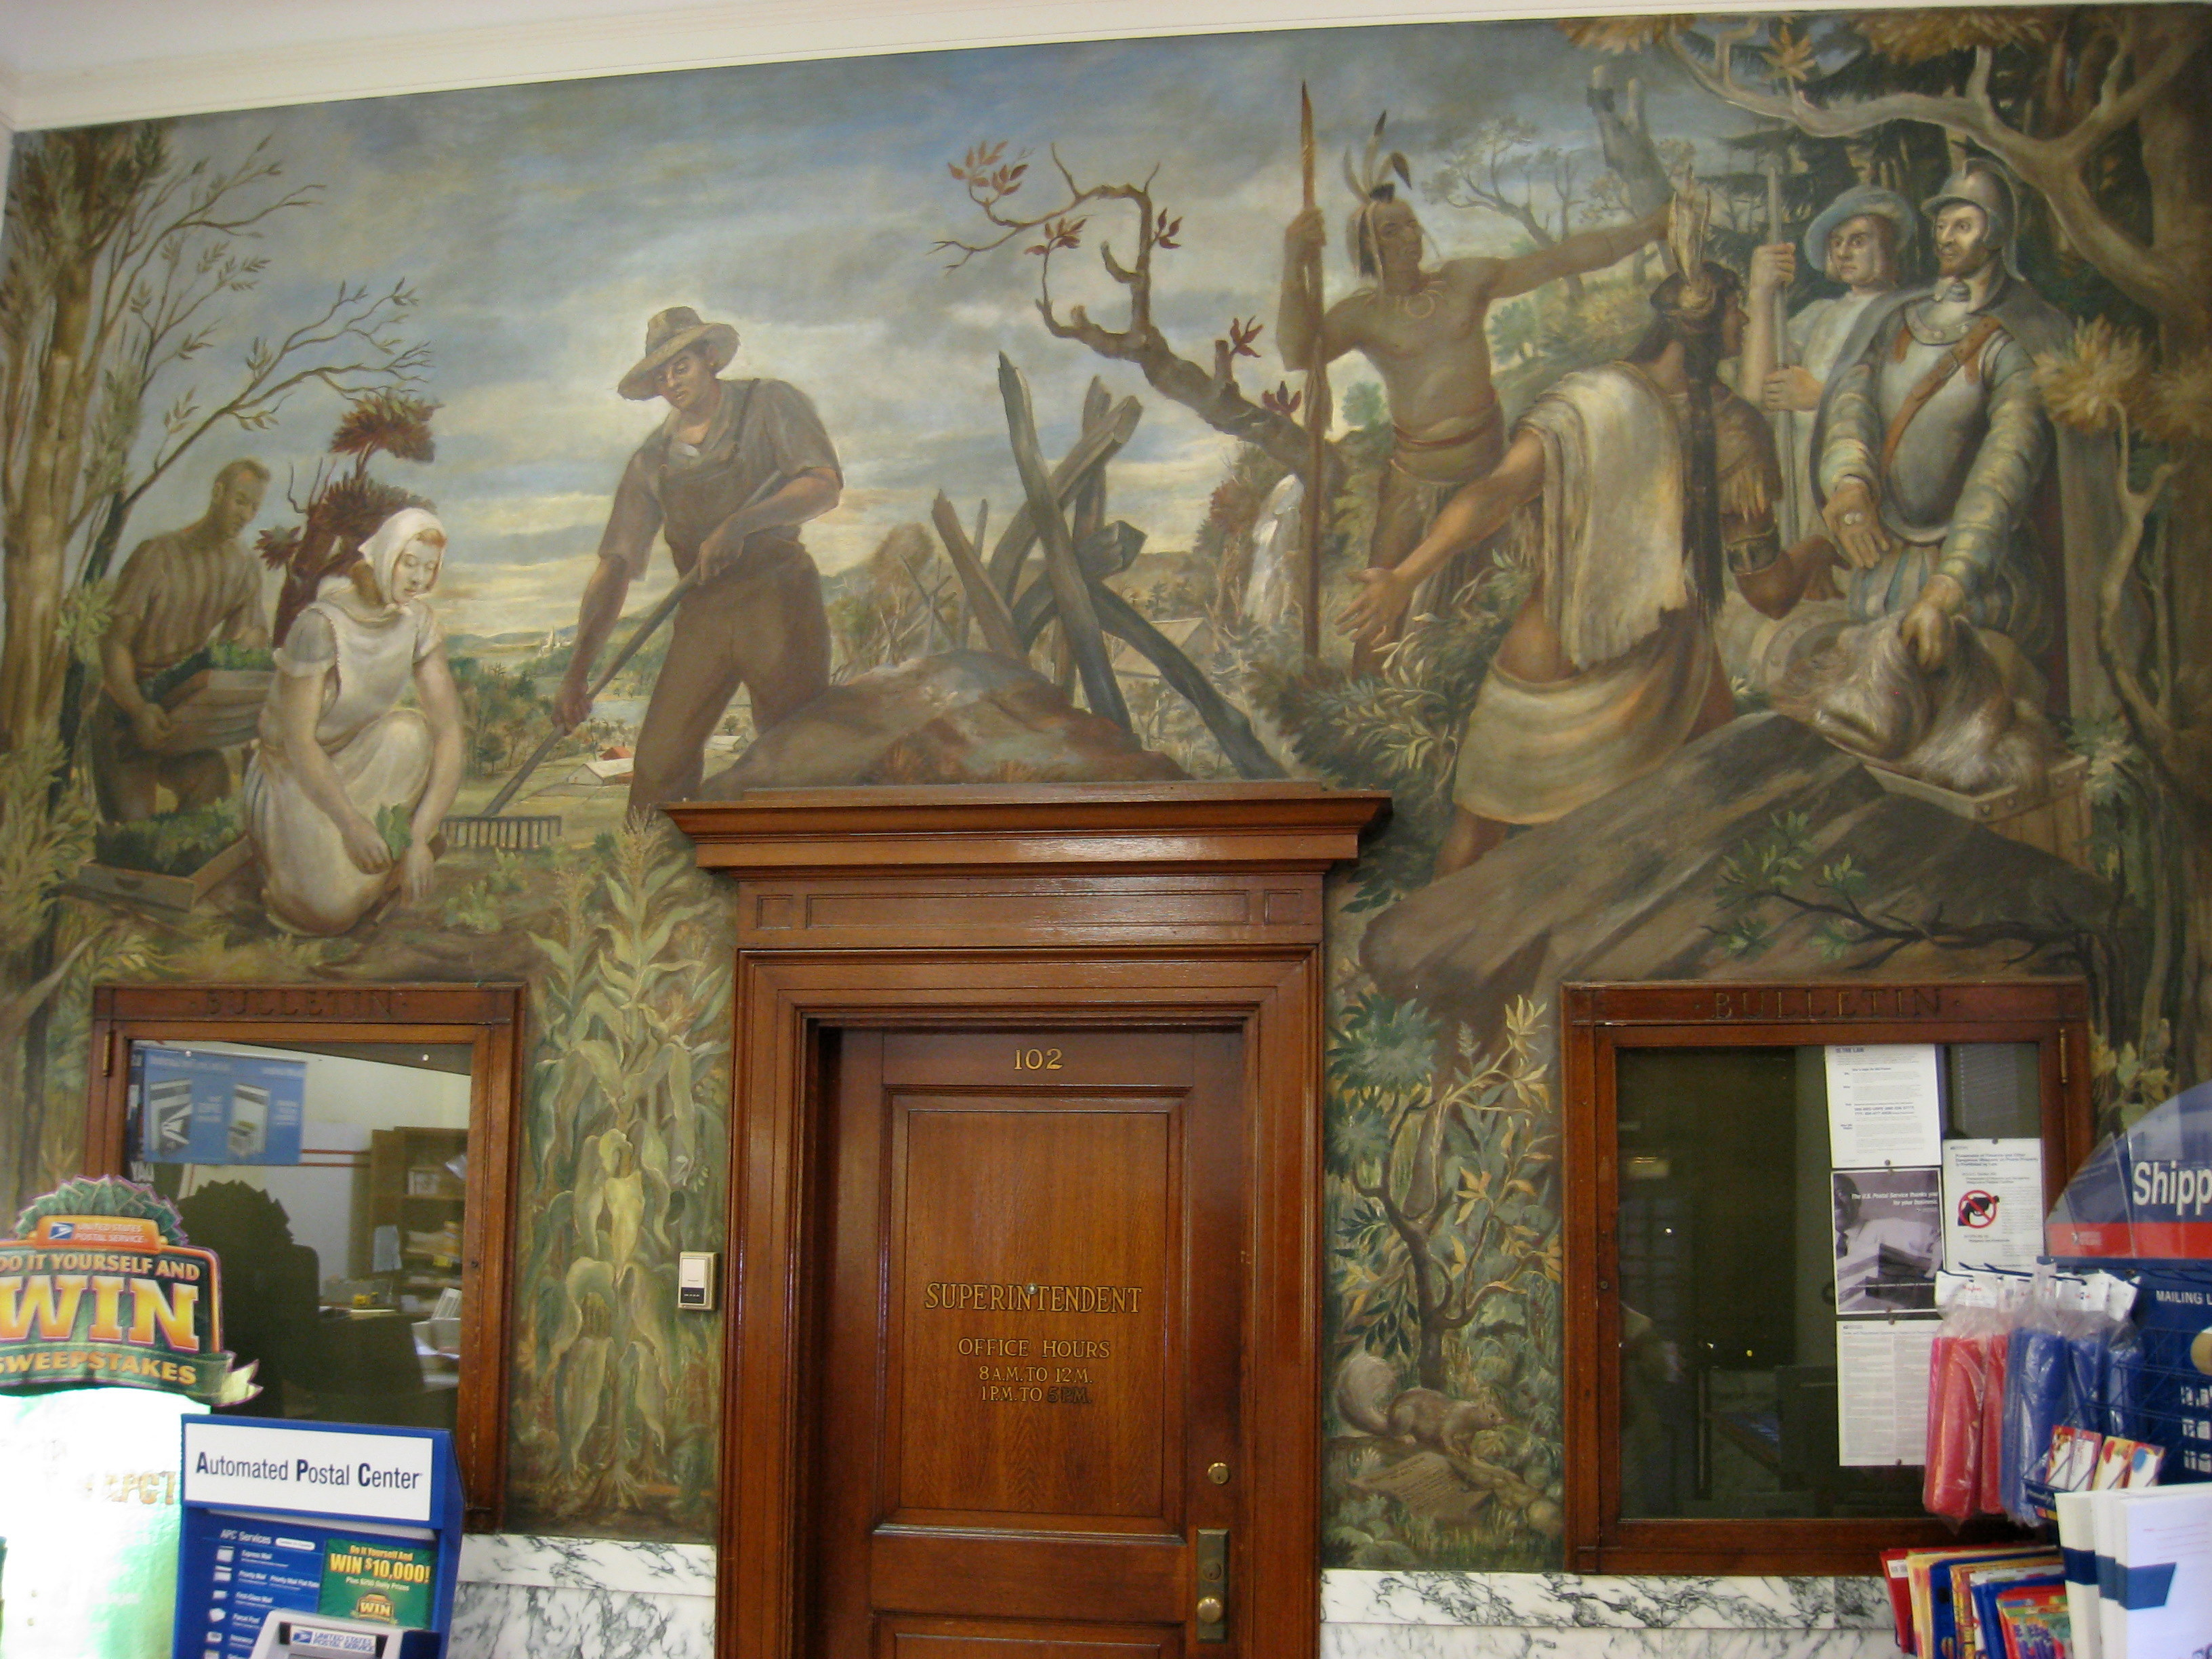 File:Post Office WPA mural - Arlington, MA.JPG - Wikimedia